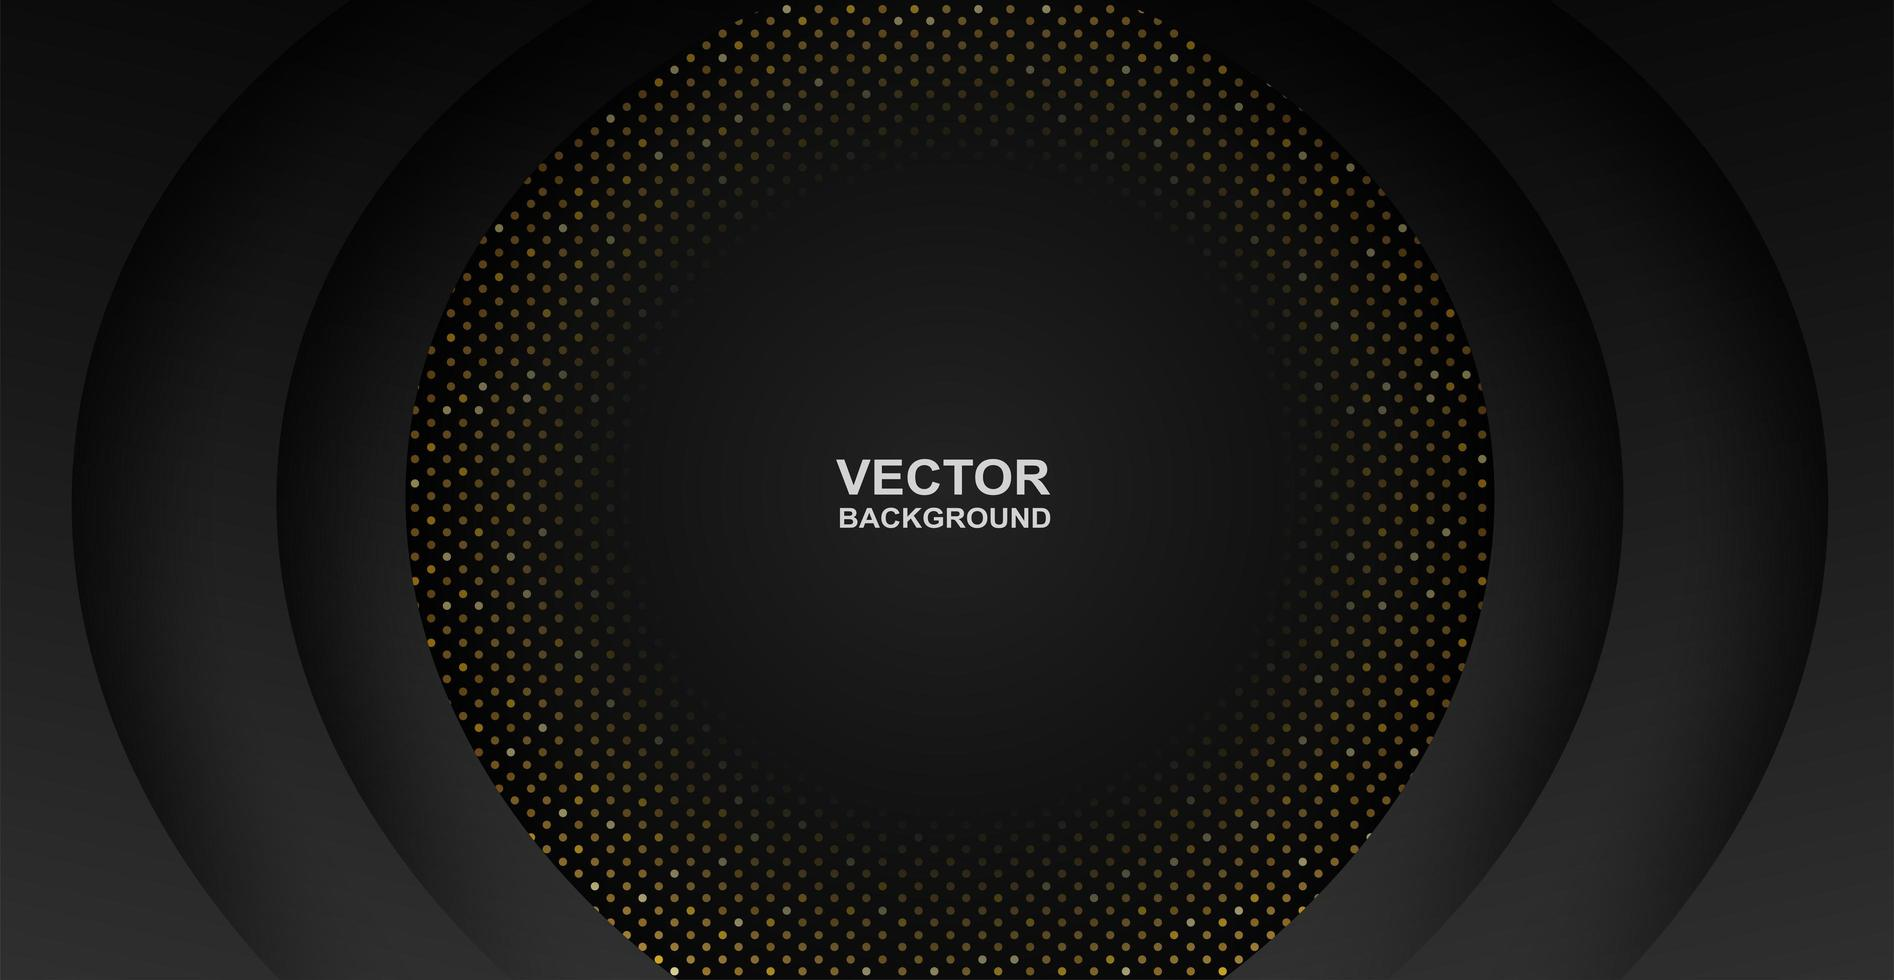 Abstract Overlapping Circles Black Background  vector